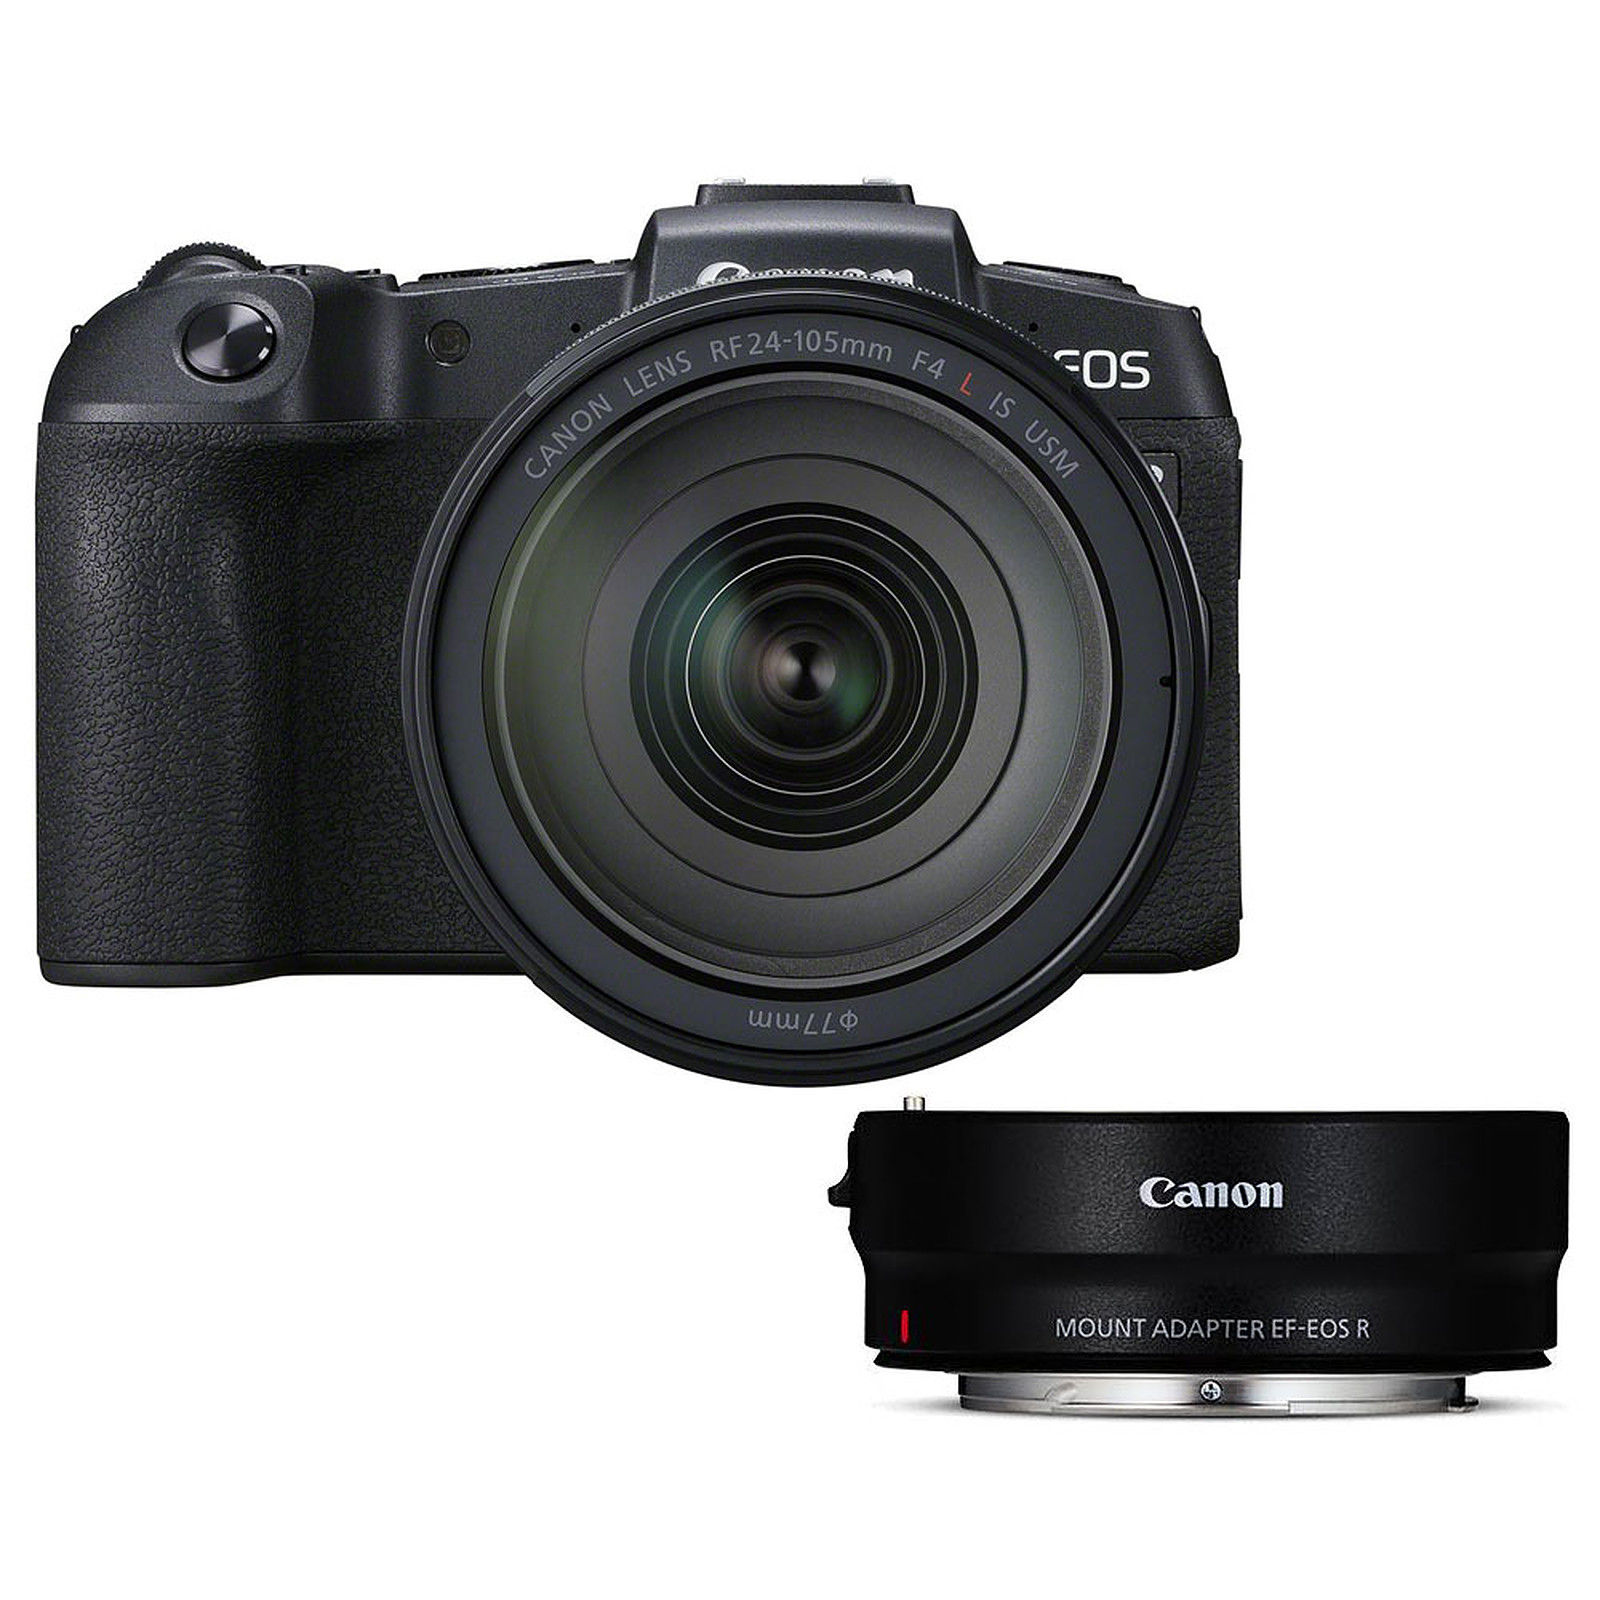 Canon EOS RP + RF 24-105mm f/4L IS USM + EF-EOS R